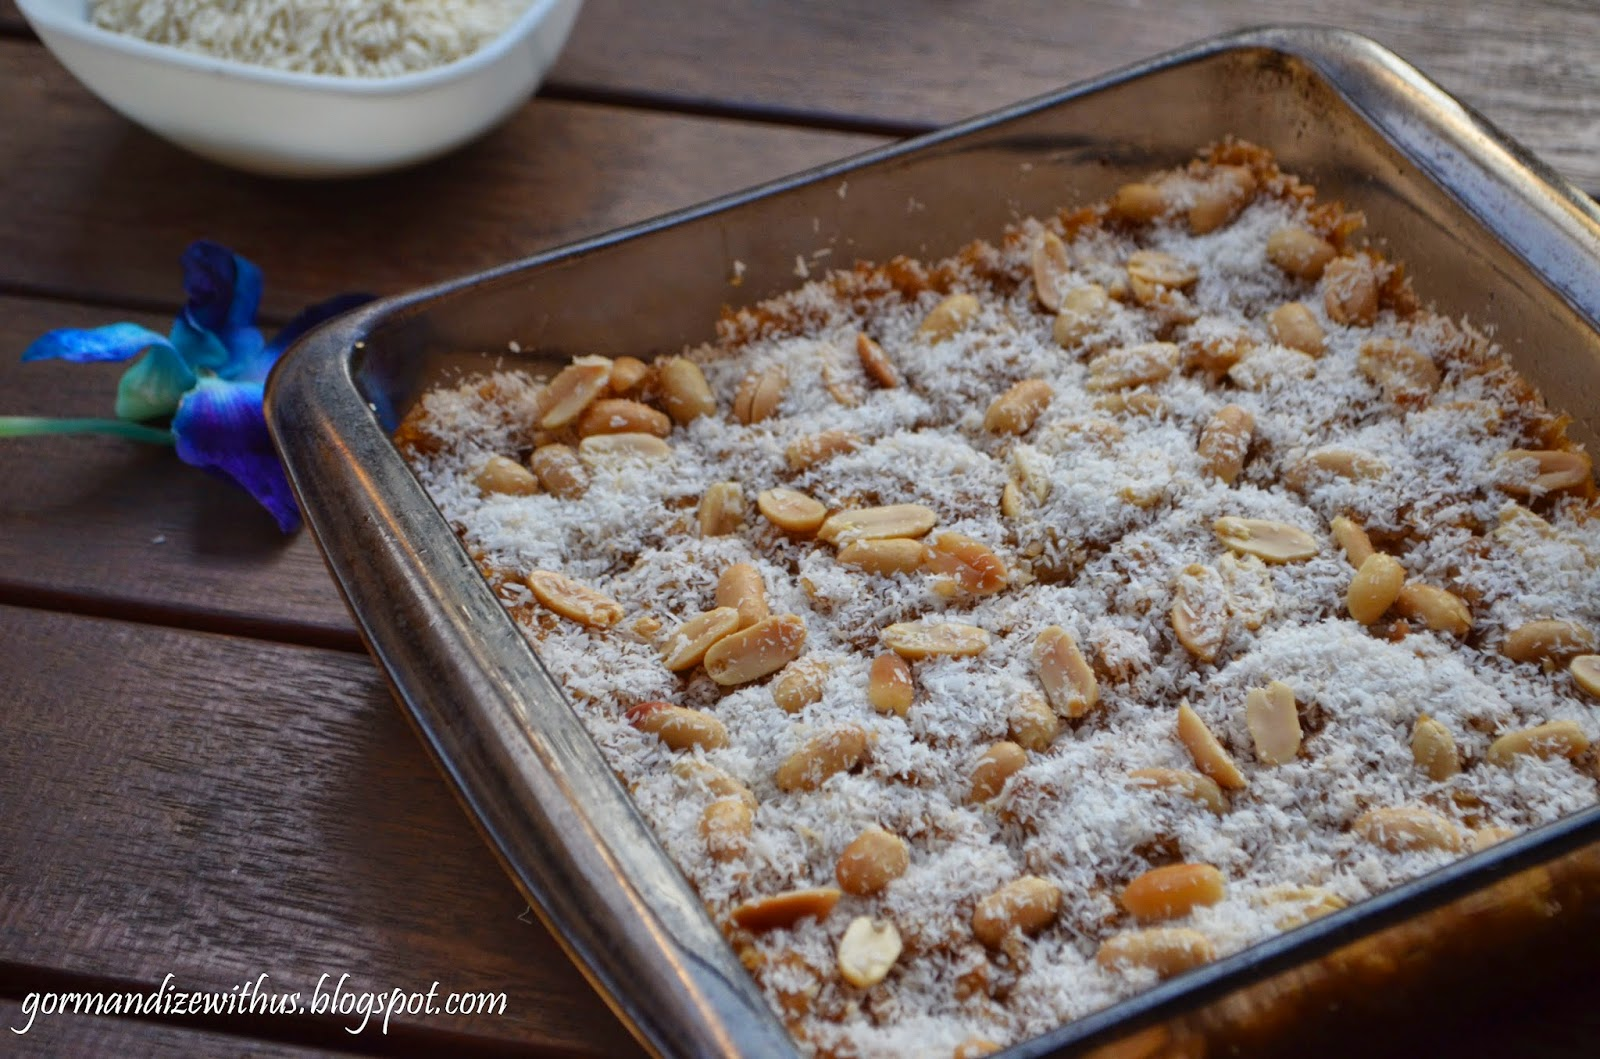 Gormandize burmese sticky rice cake time to share with you another delicious recipe from the lovely cuisine of myanmar this sticky rice cake is so more ish because its incredibly tasty and forumfinder Choice Image